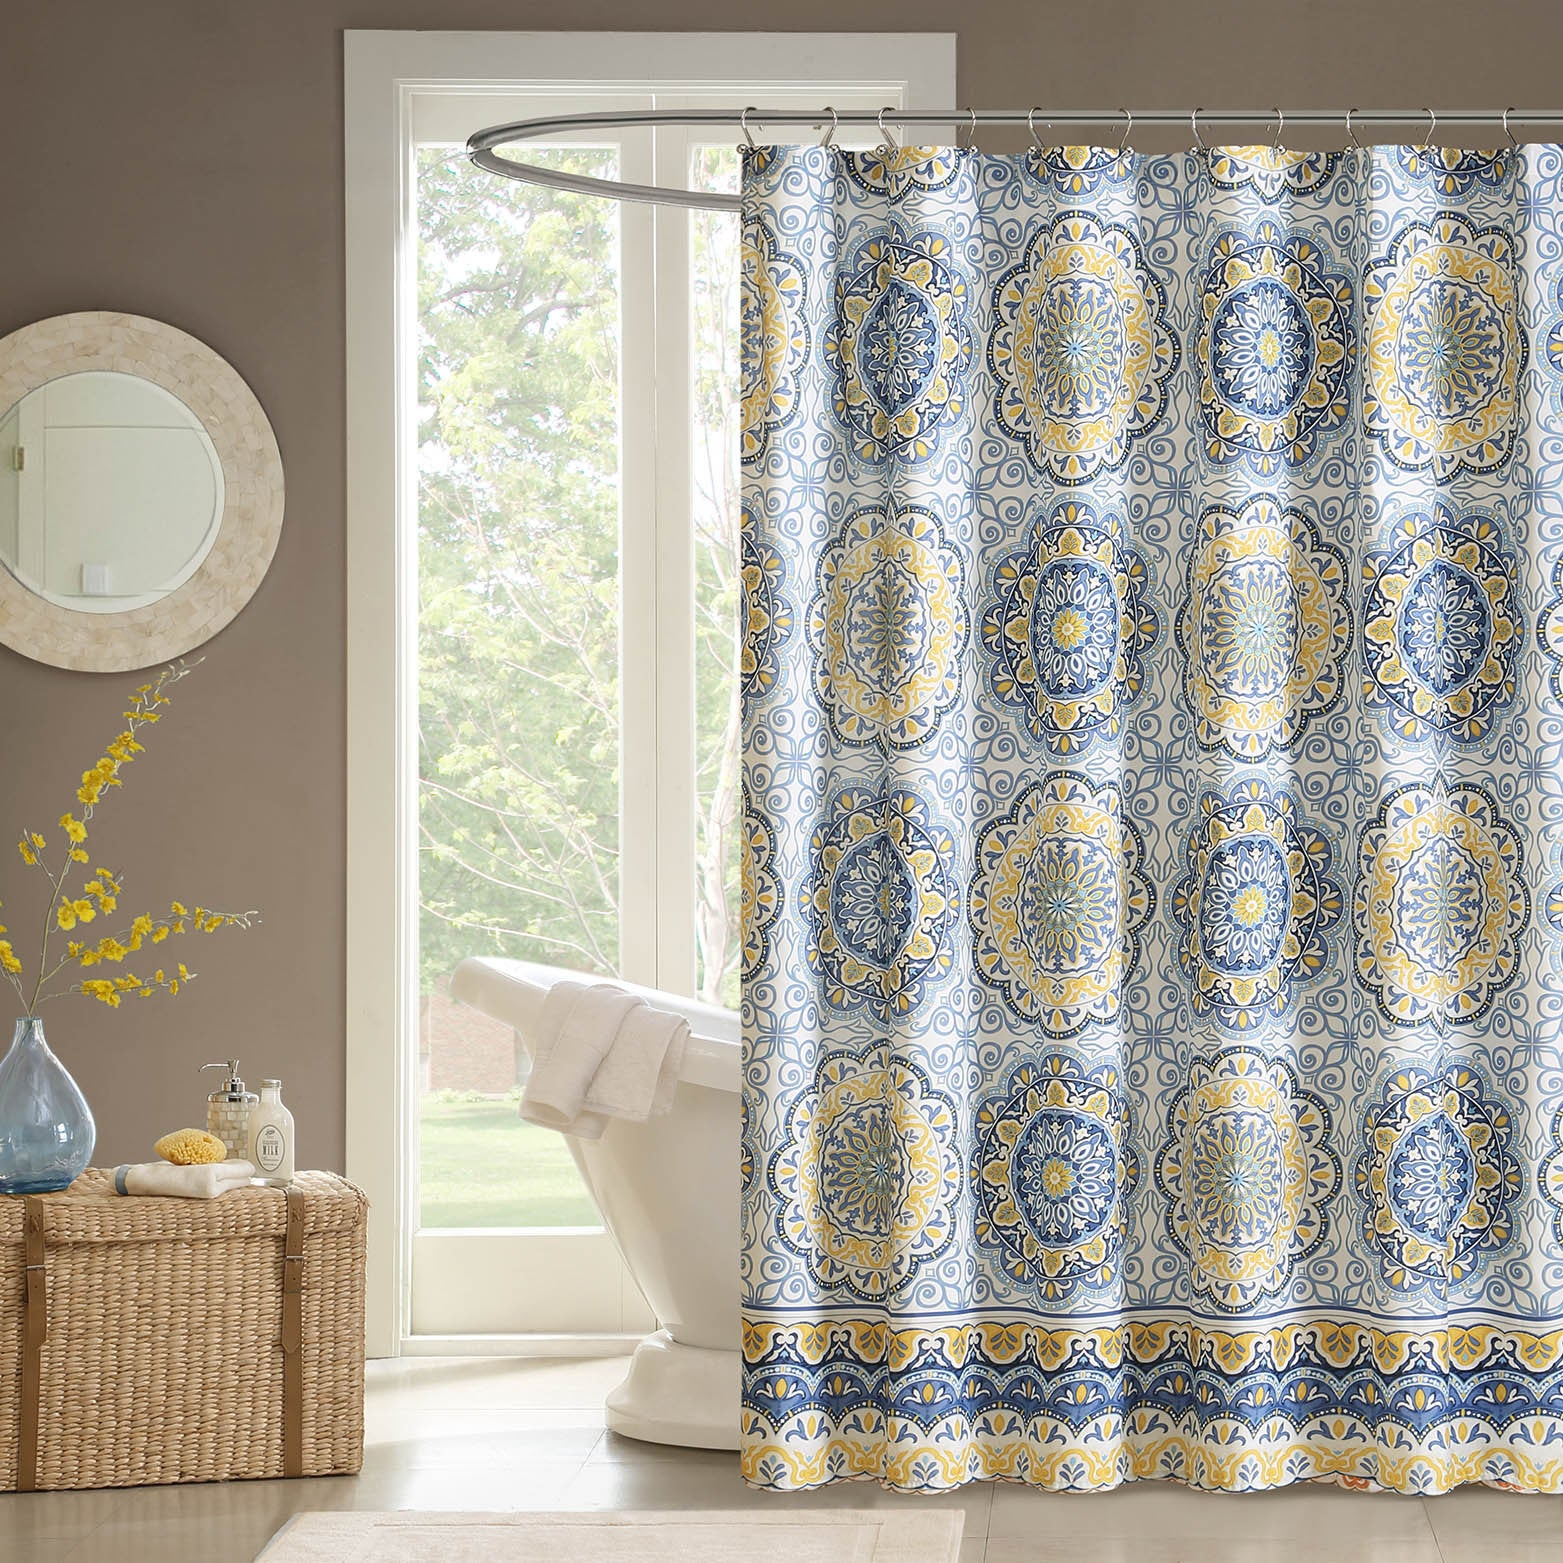 Shower Accessories   Find Great Bath & Towels Deals Shopping at ...